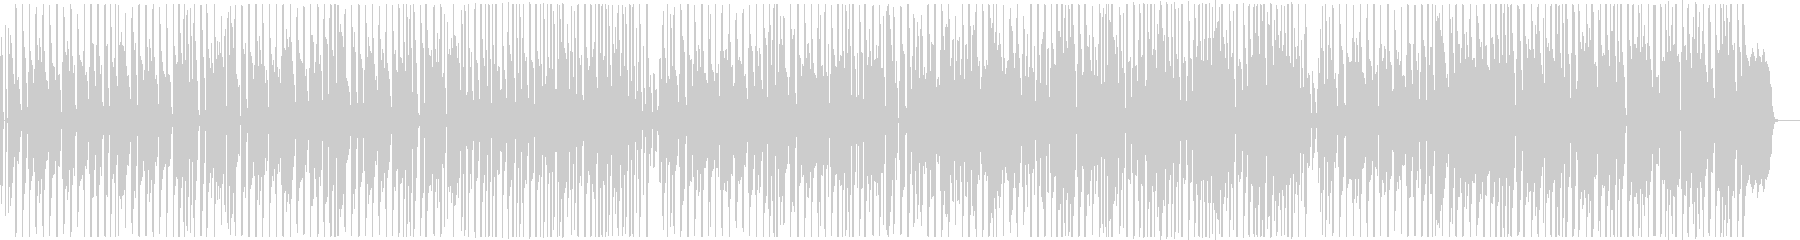 Happy BGM with whistling and pianica's unreproduced waveform